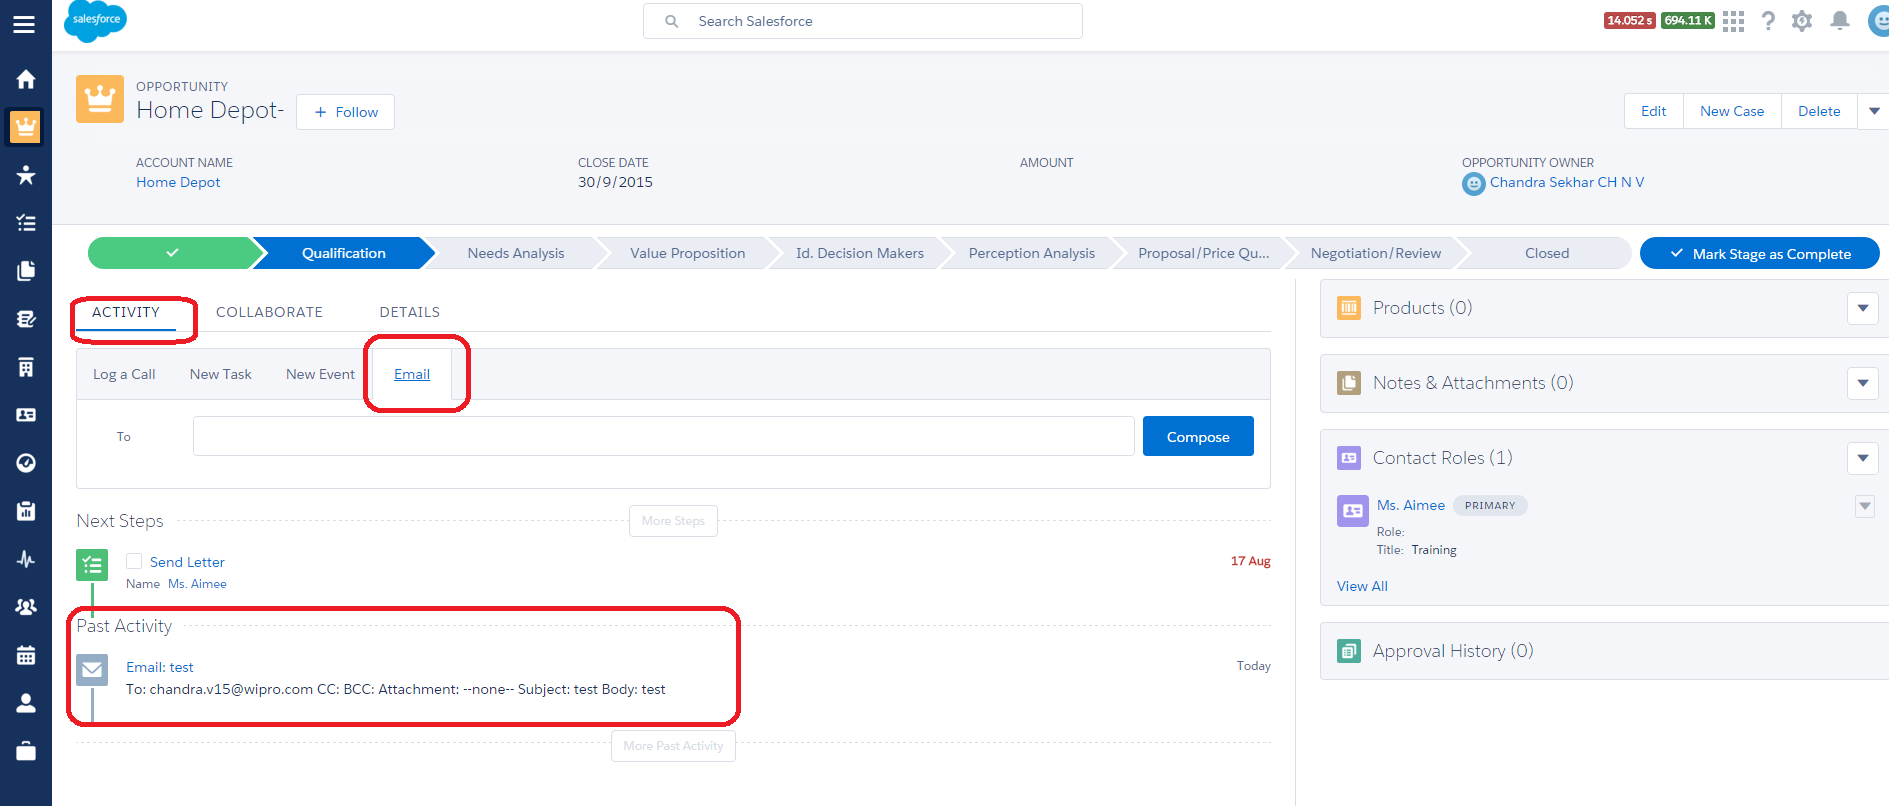 Email and Log Call Missing in Lightning - Salesforce